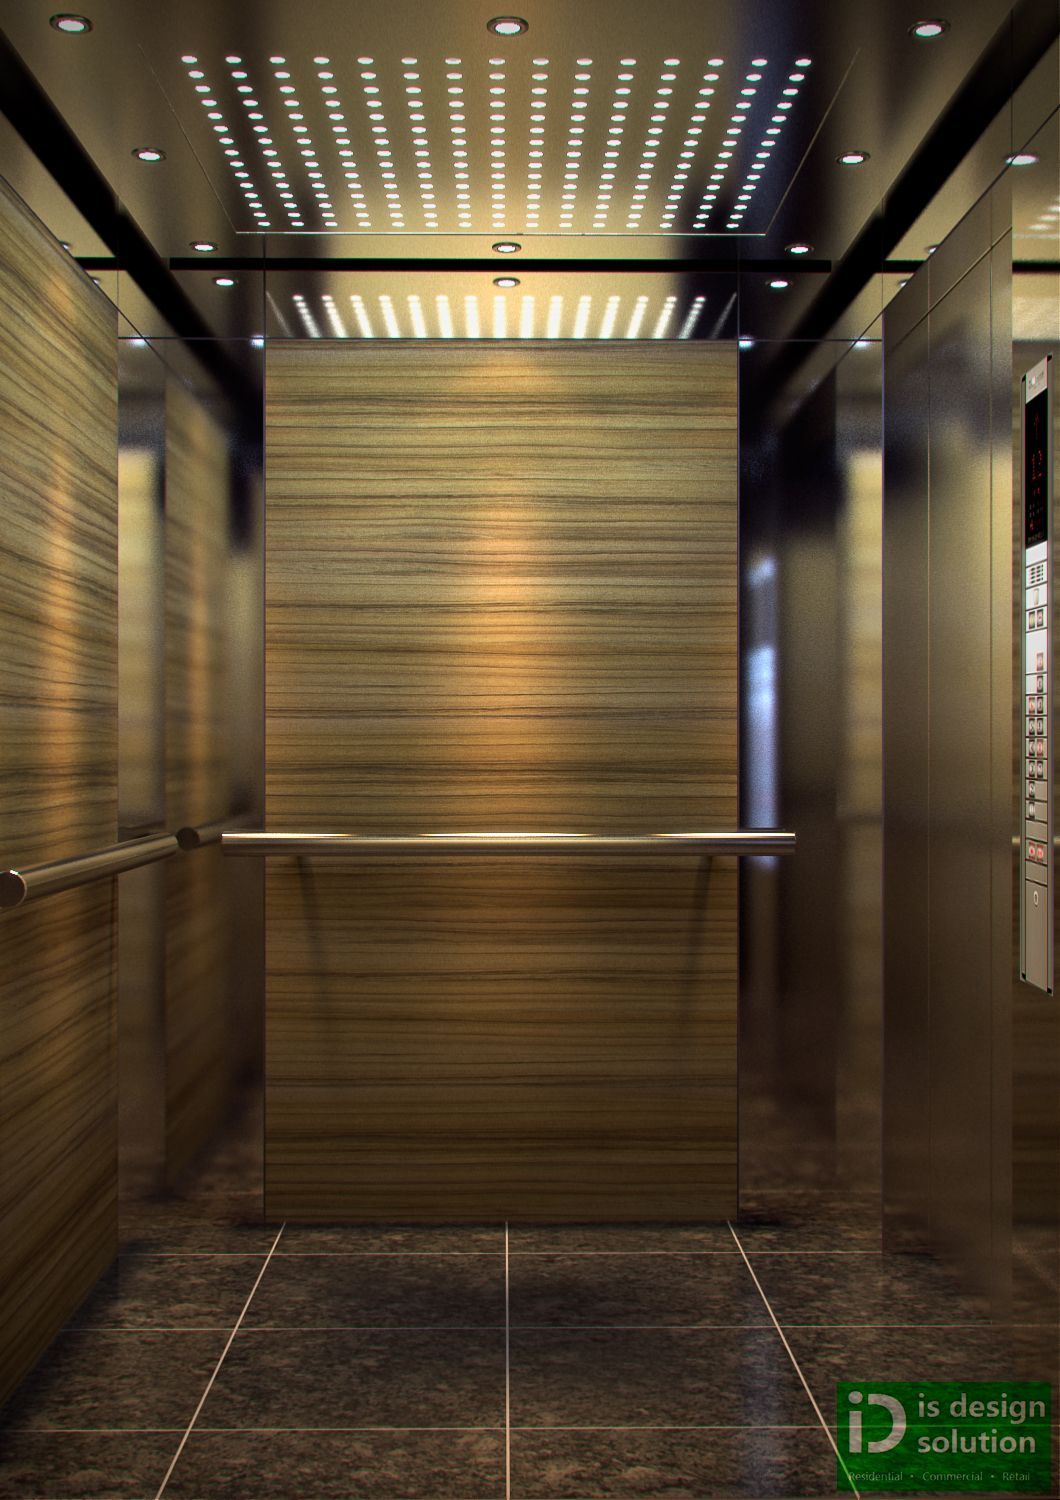 Is Design Solution Lift Cabin Elevator Interior Elevator Design Lift Design